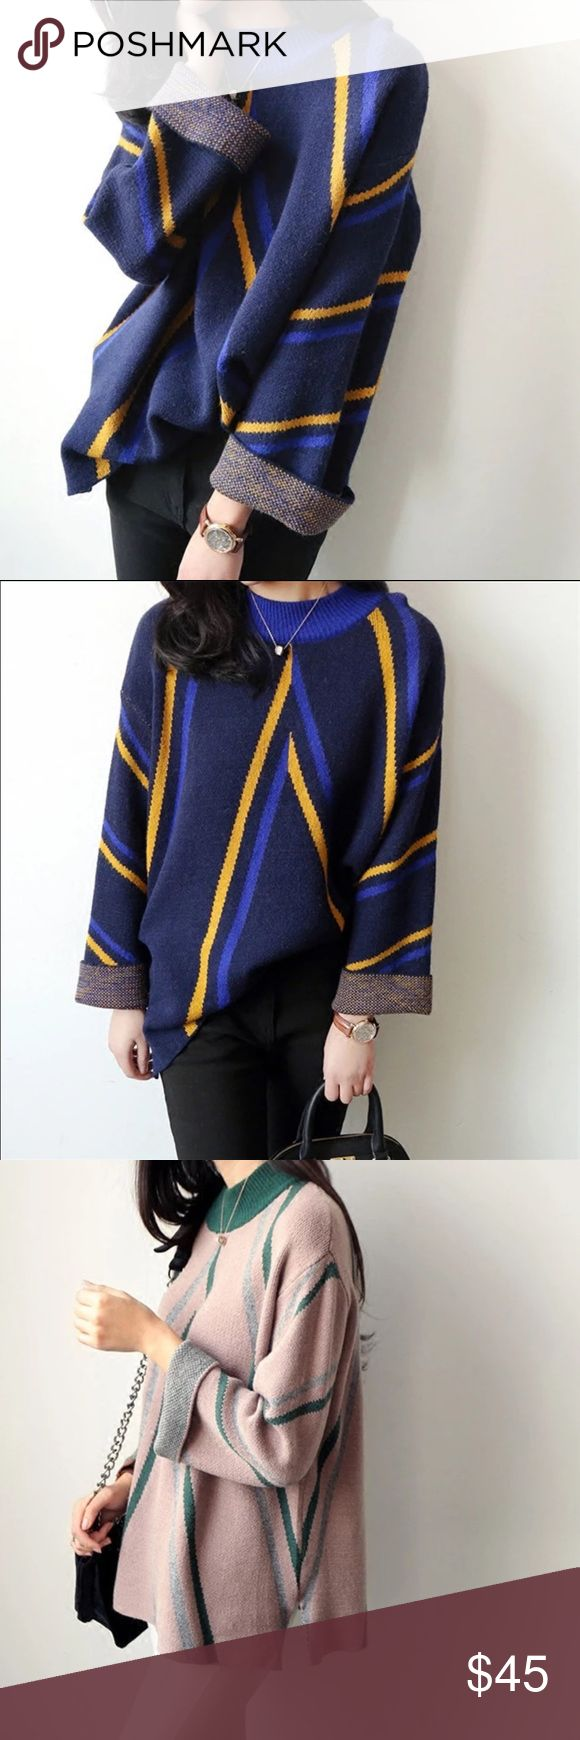 """Coming soon. Stripped soft sweater Material: acrylic. Measurement: one size - bust: 43.3"""", length: 33.6"""", sleeve Length: 16.9"""", shoulder to shoulder: 18.11"""" Sweaters"""